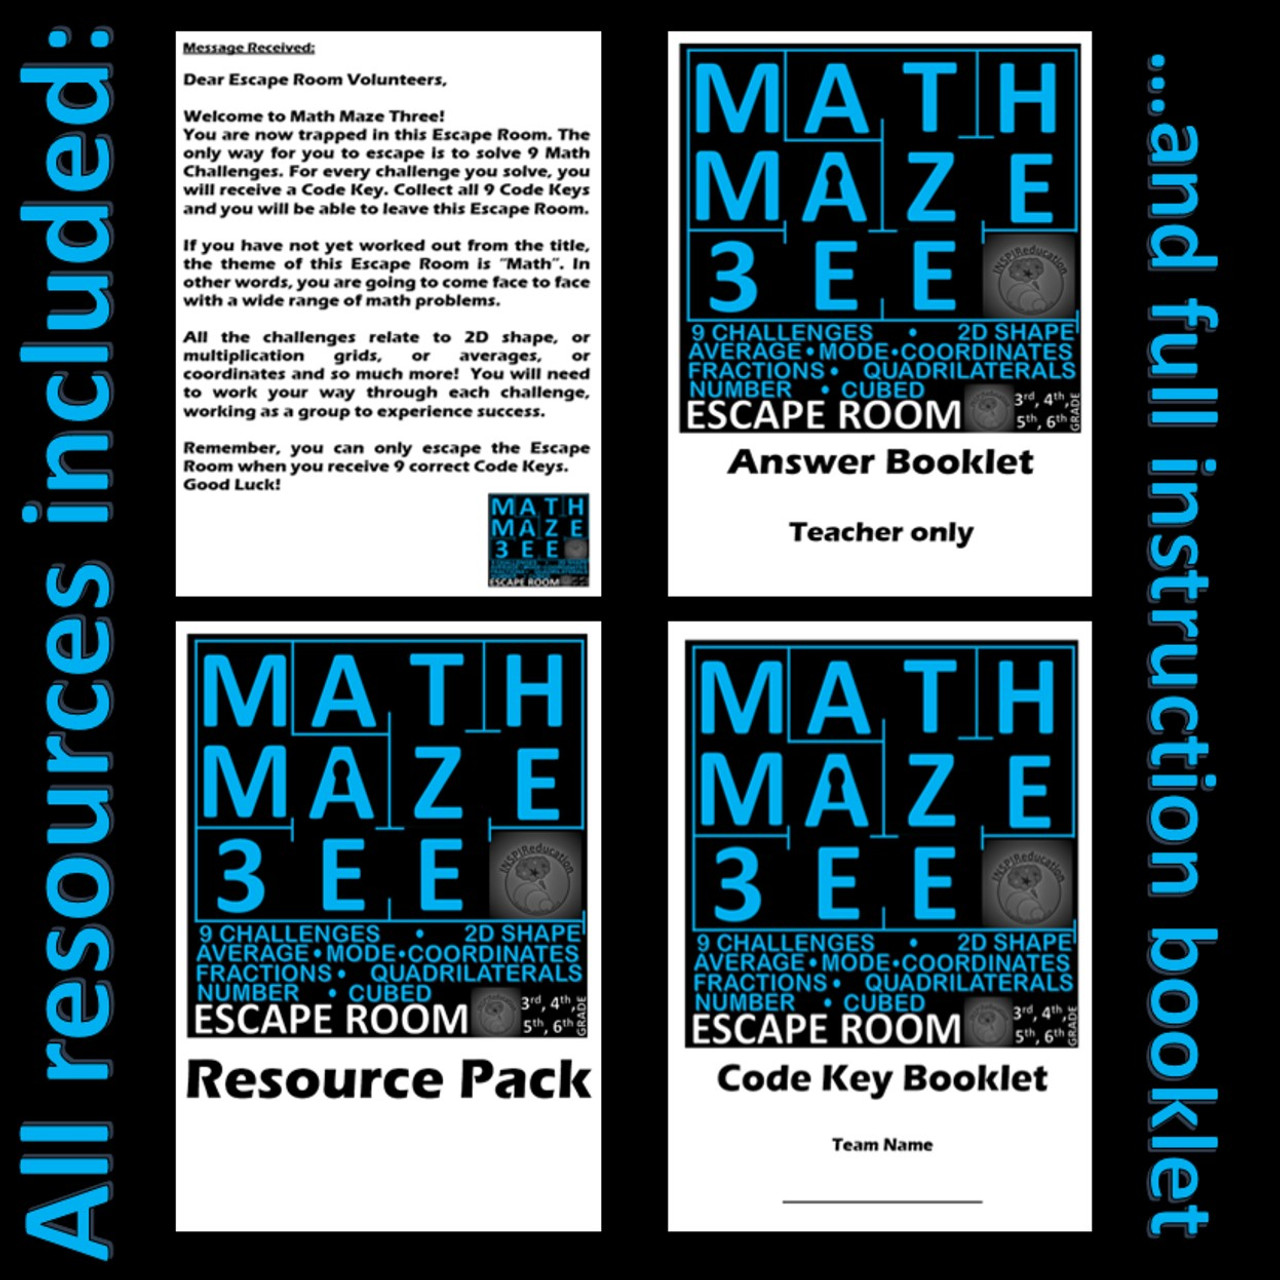 Math Escape Room - Math Maze Three - Number and Shape: 9 Challenges